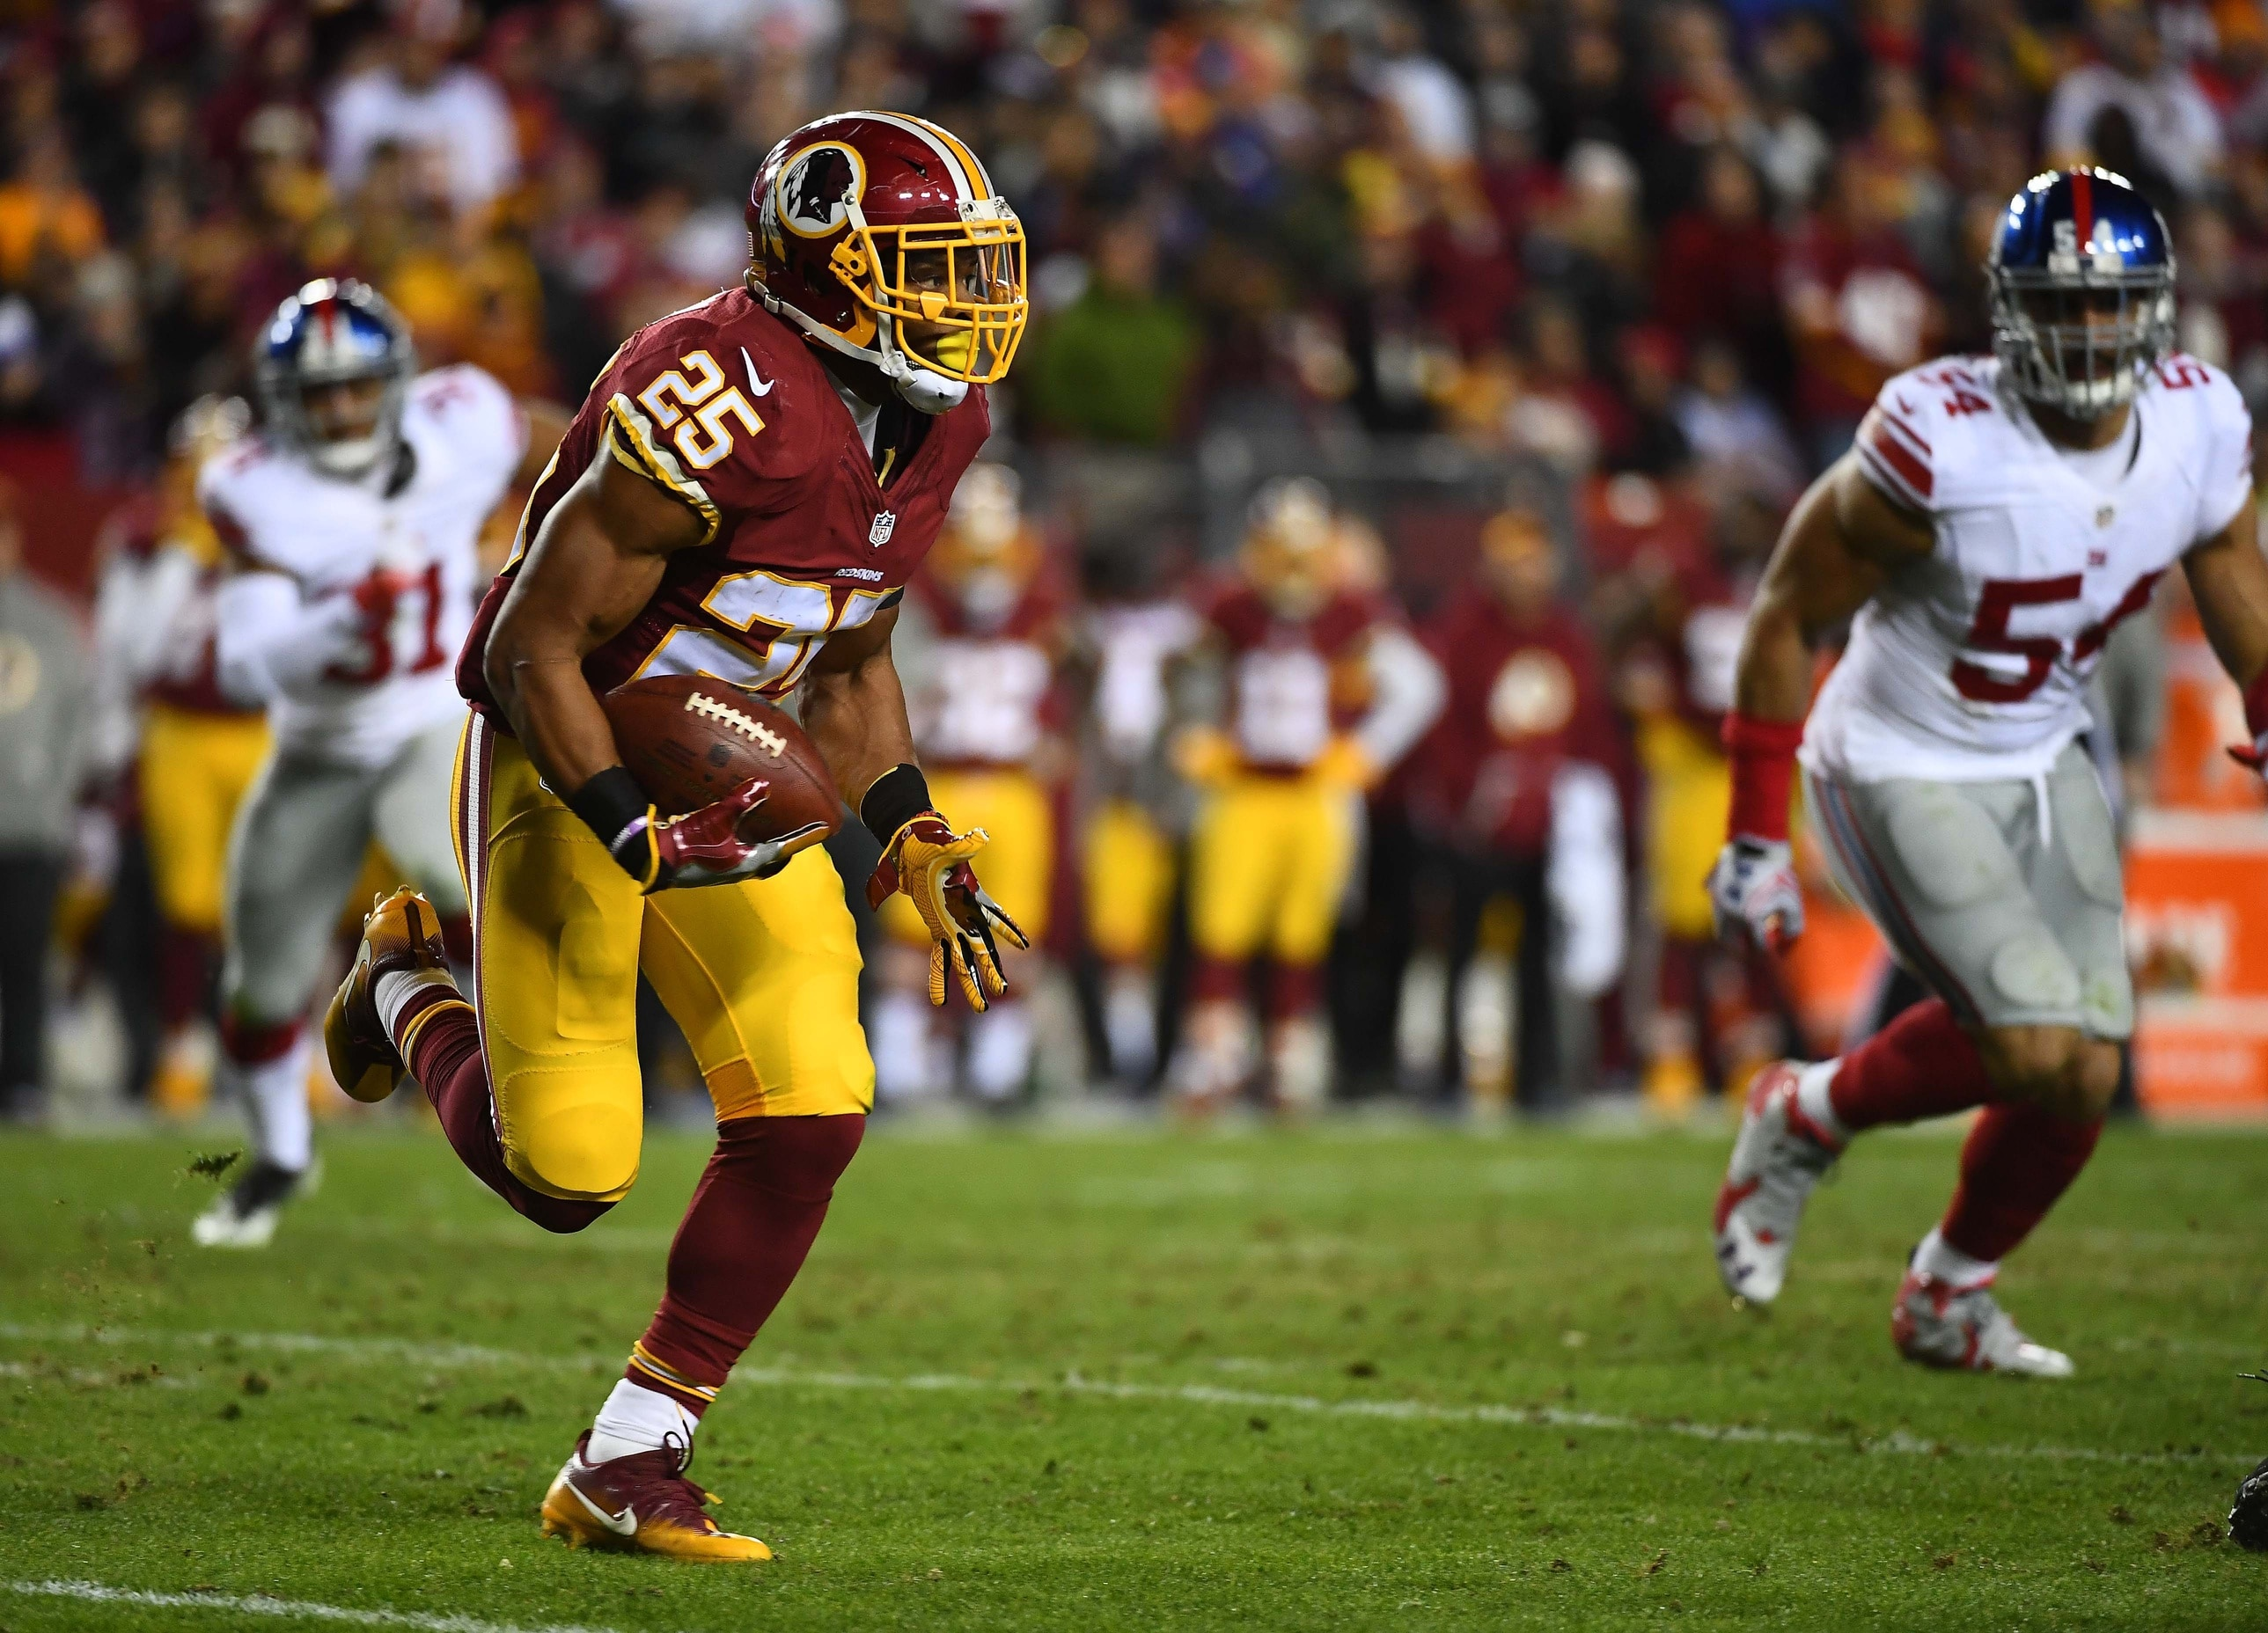 Jan 1, 2017; Landover, MD, USA; Washington Redskins running back Chris Thompson (25) rushes the ball against the New York Giants during the second half at FedEx Field. Mandatory Credit: Brad Mills-USA TODAY Sports